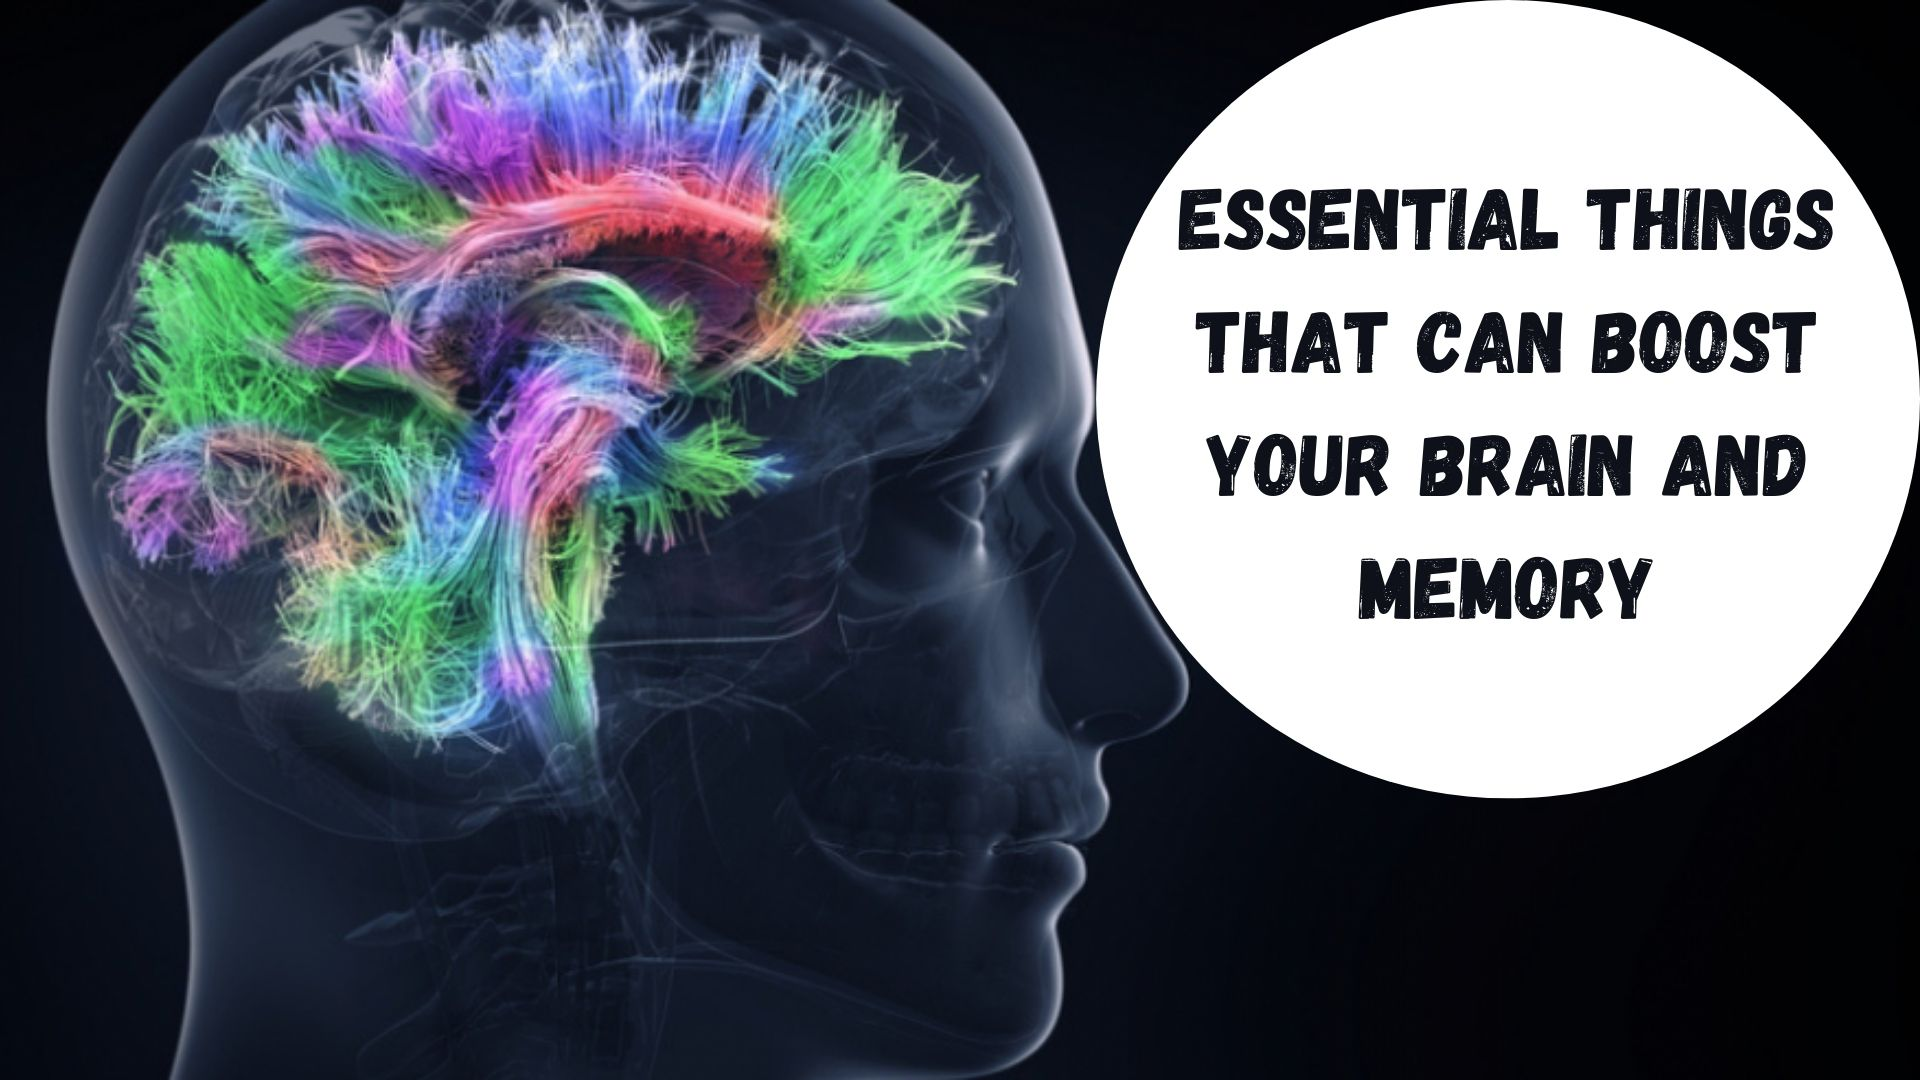 Essential Things That Can Boost Your Brain and Memory